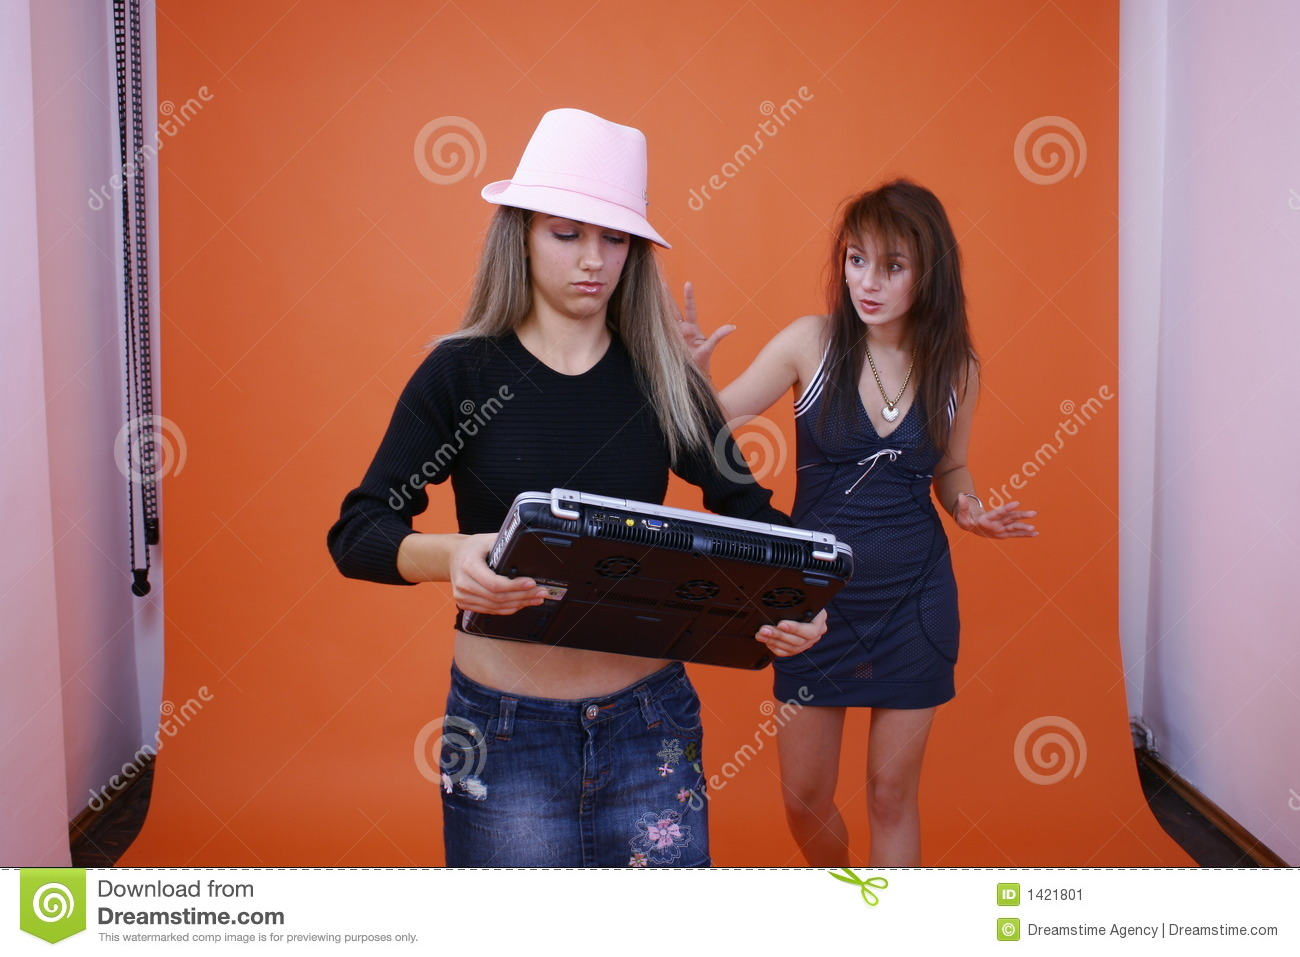 Two Women And A Laptop 2